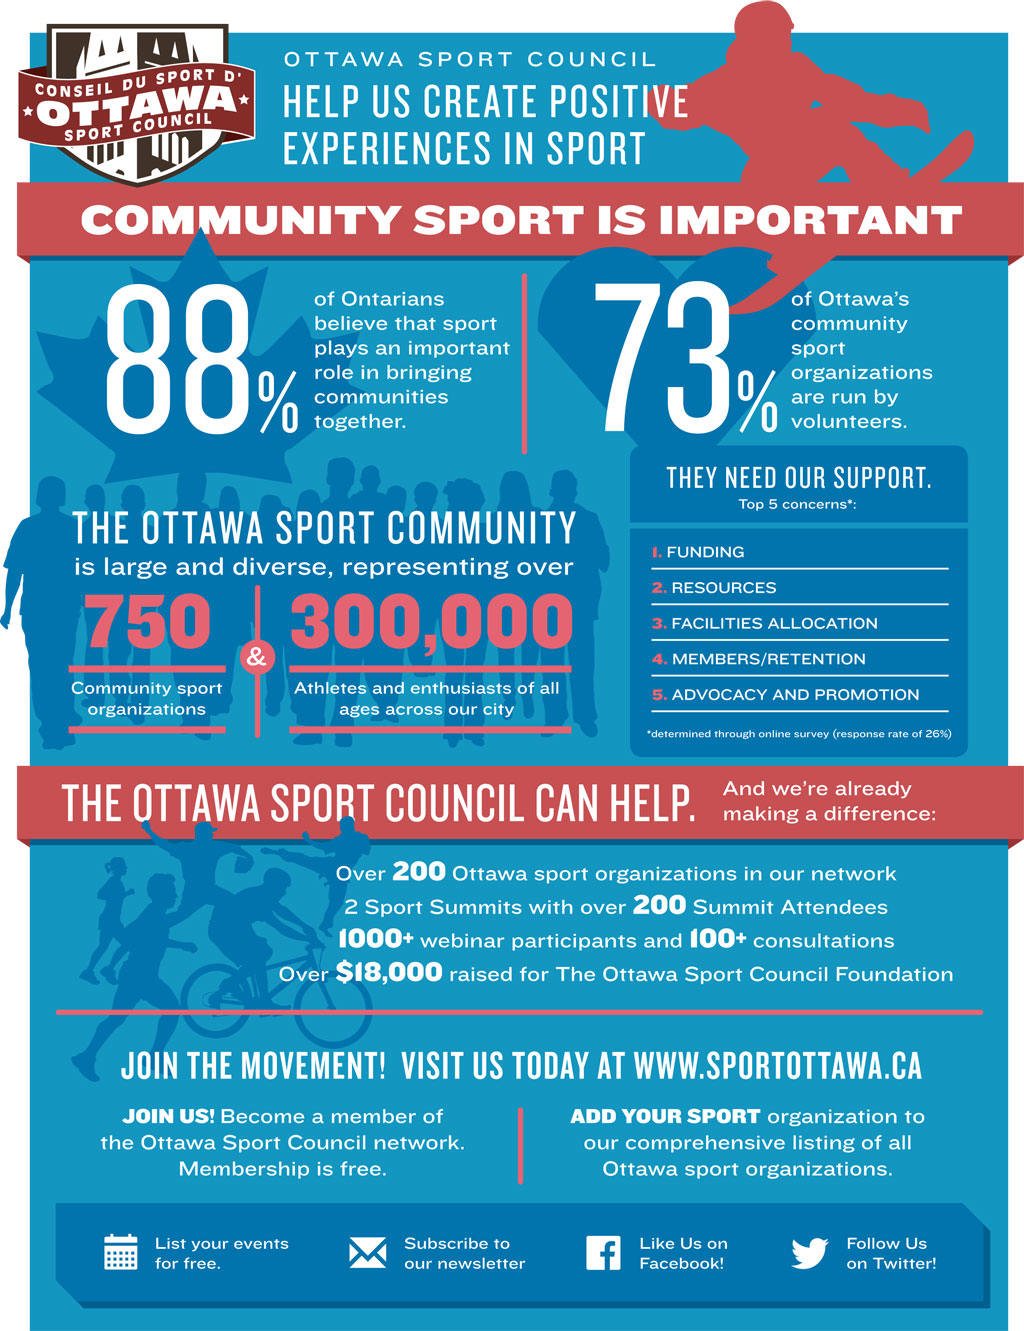 How the Ottawa Sport Council Makes a Difference